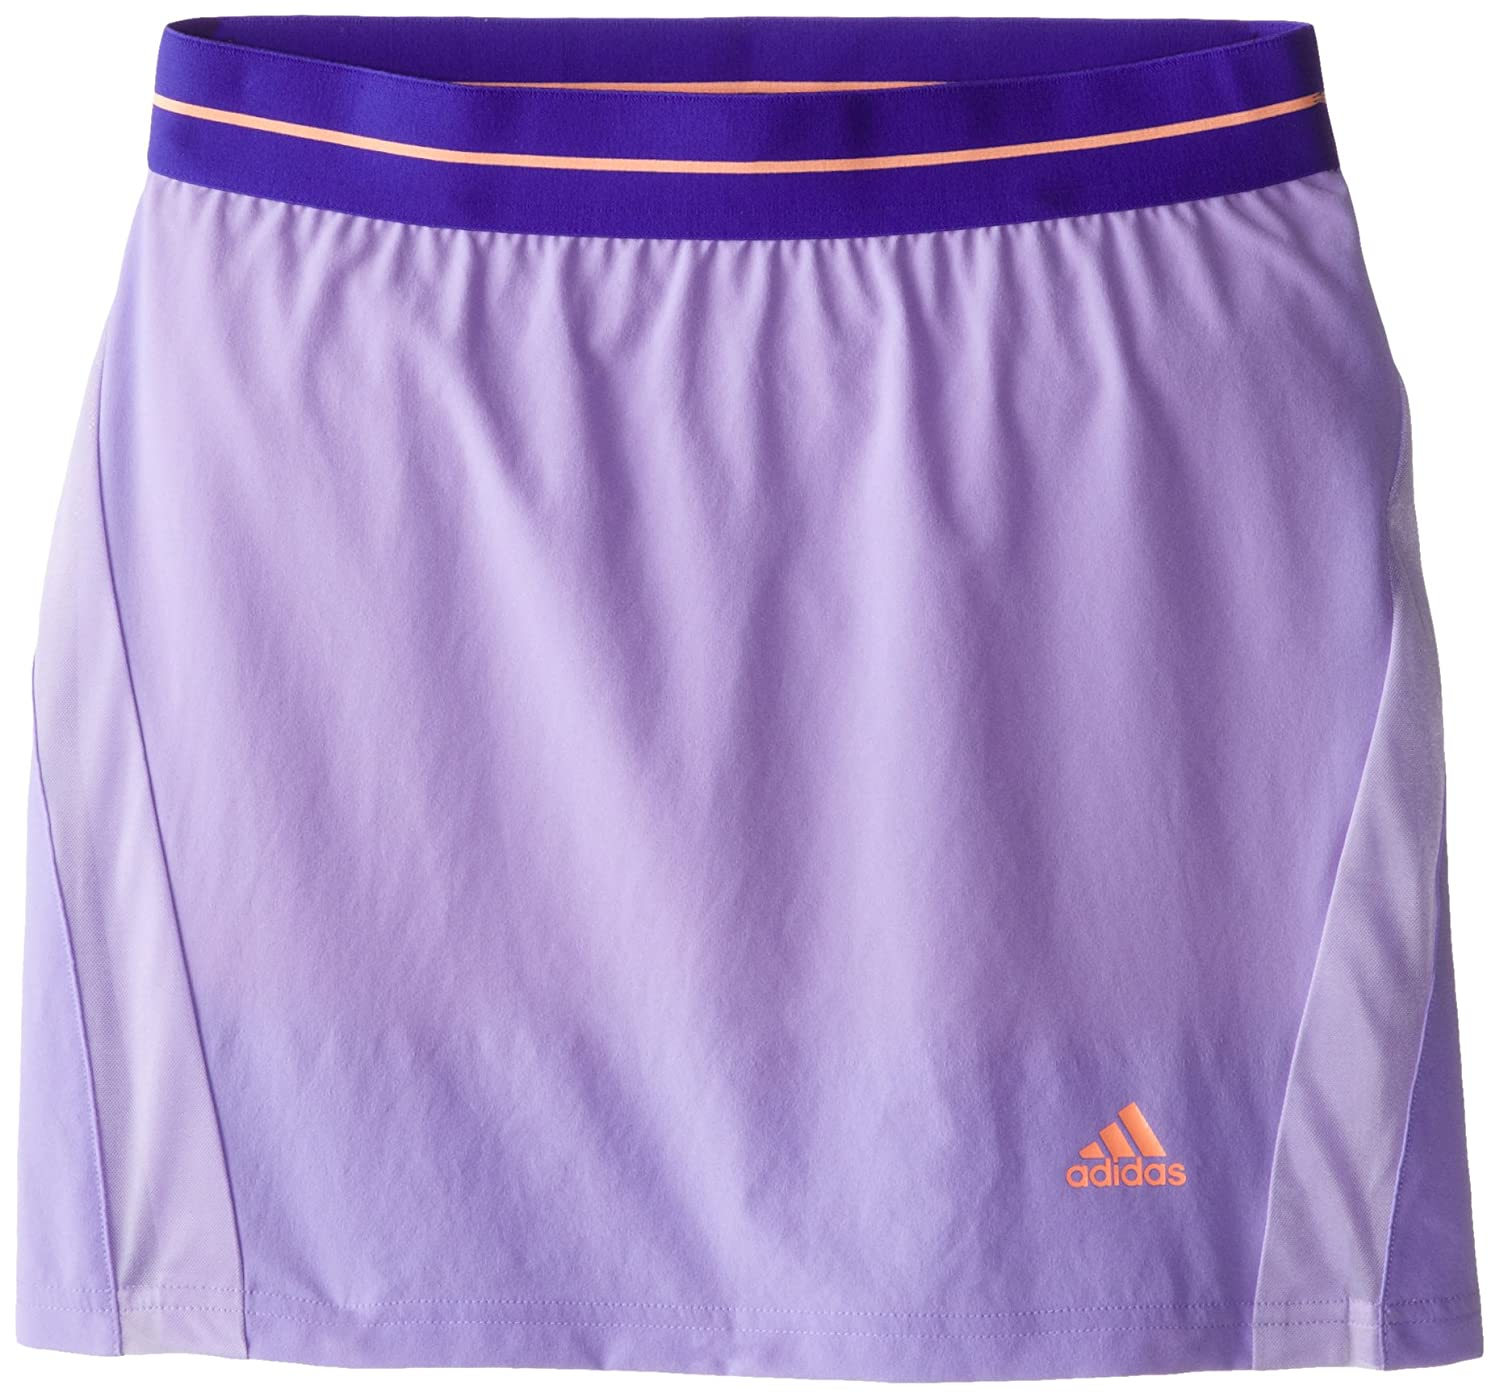 adidas Performance Girls Adizero Skort